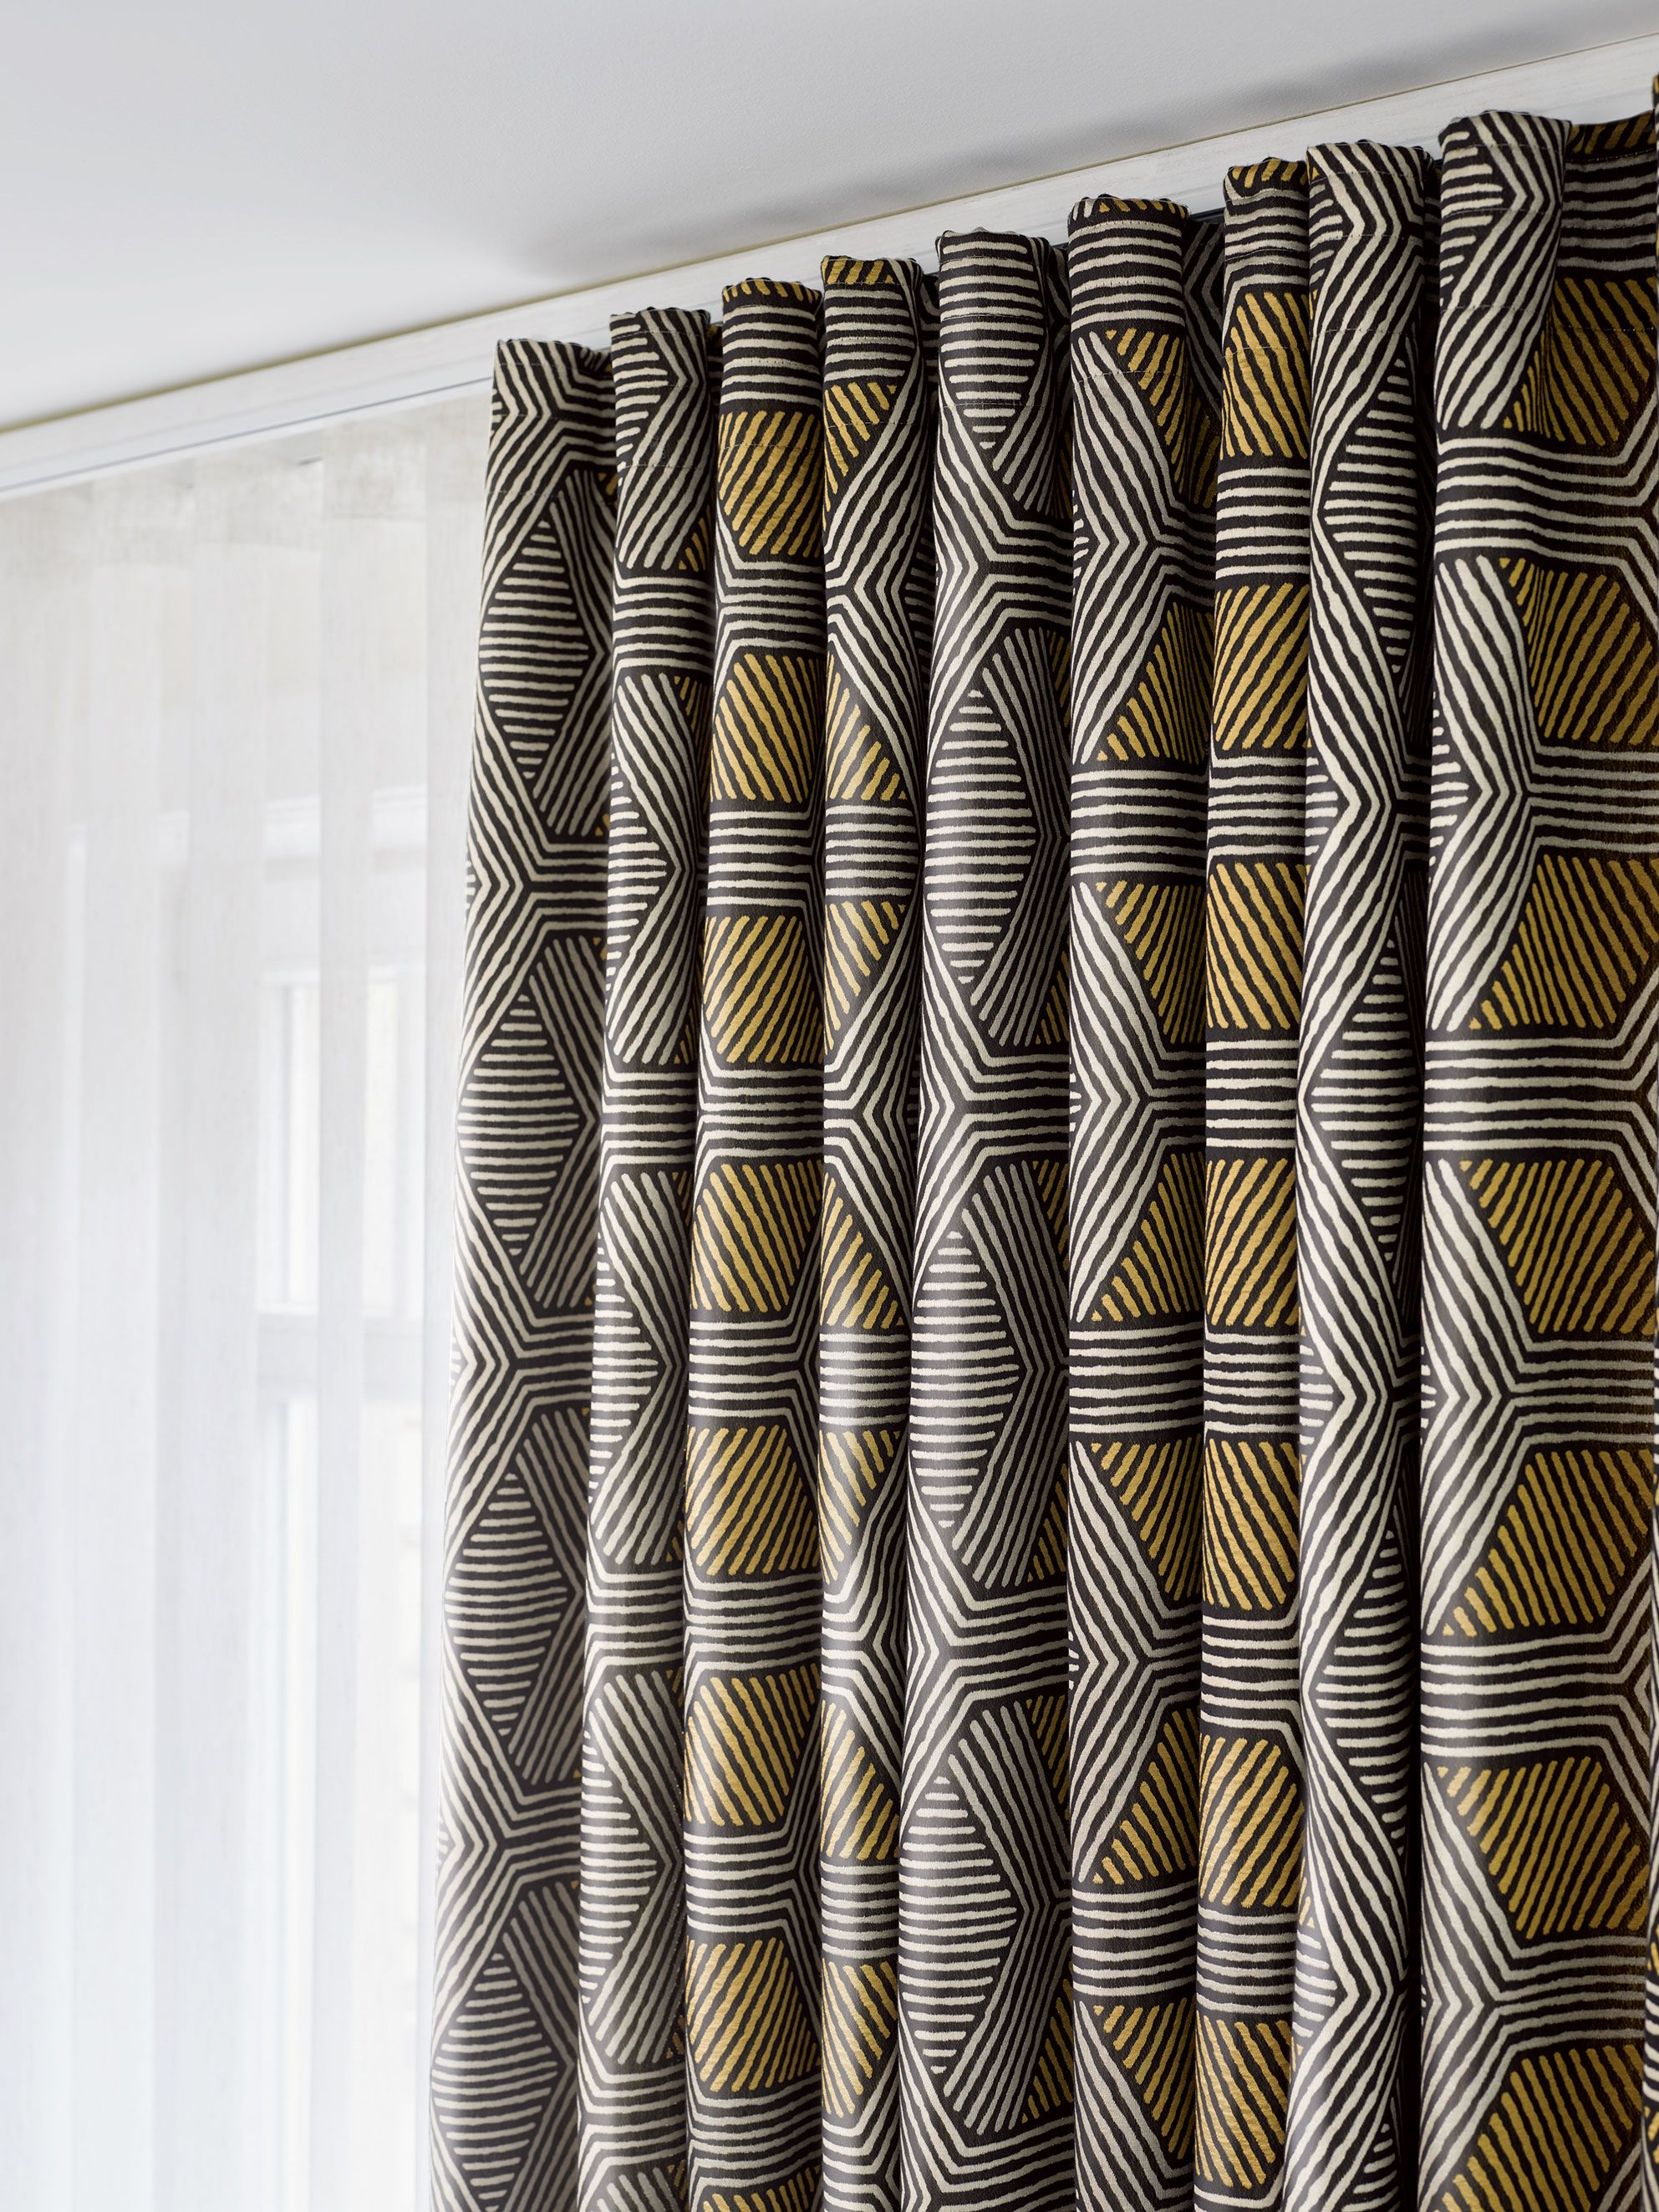 Ado Goldkante Knows How To Set A Highlight In Your Home With Its Geometrical Design This Fabric Expresses A Quirky Bu Gardinen Fensterdekoration Polsterstoffe